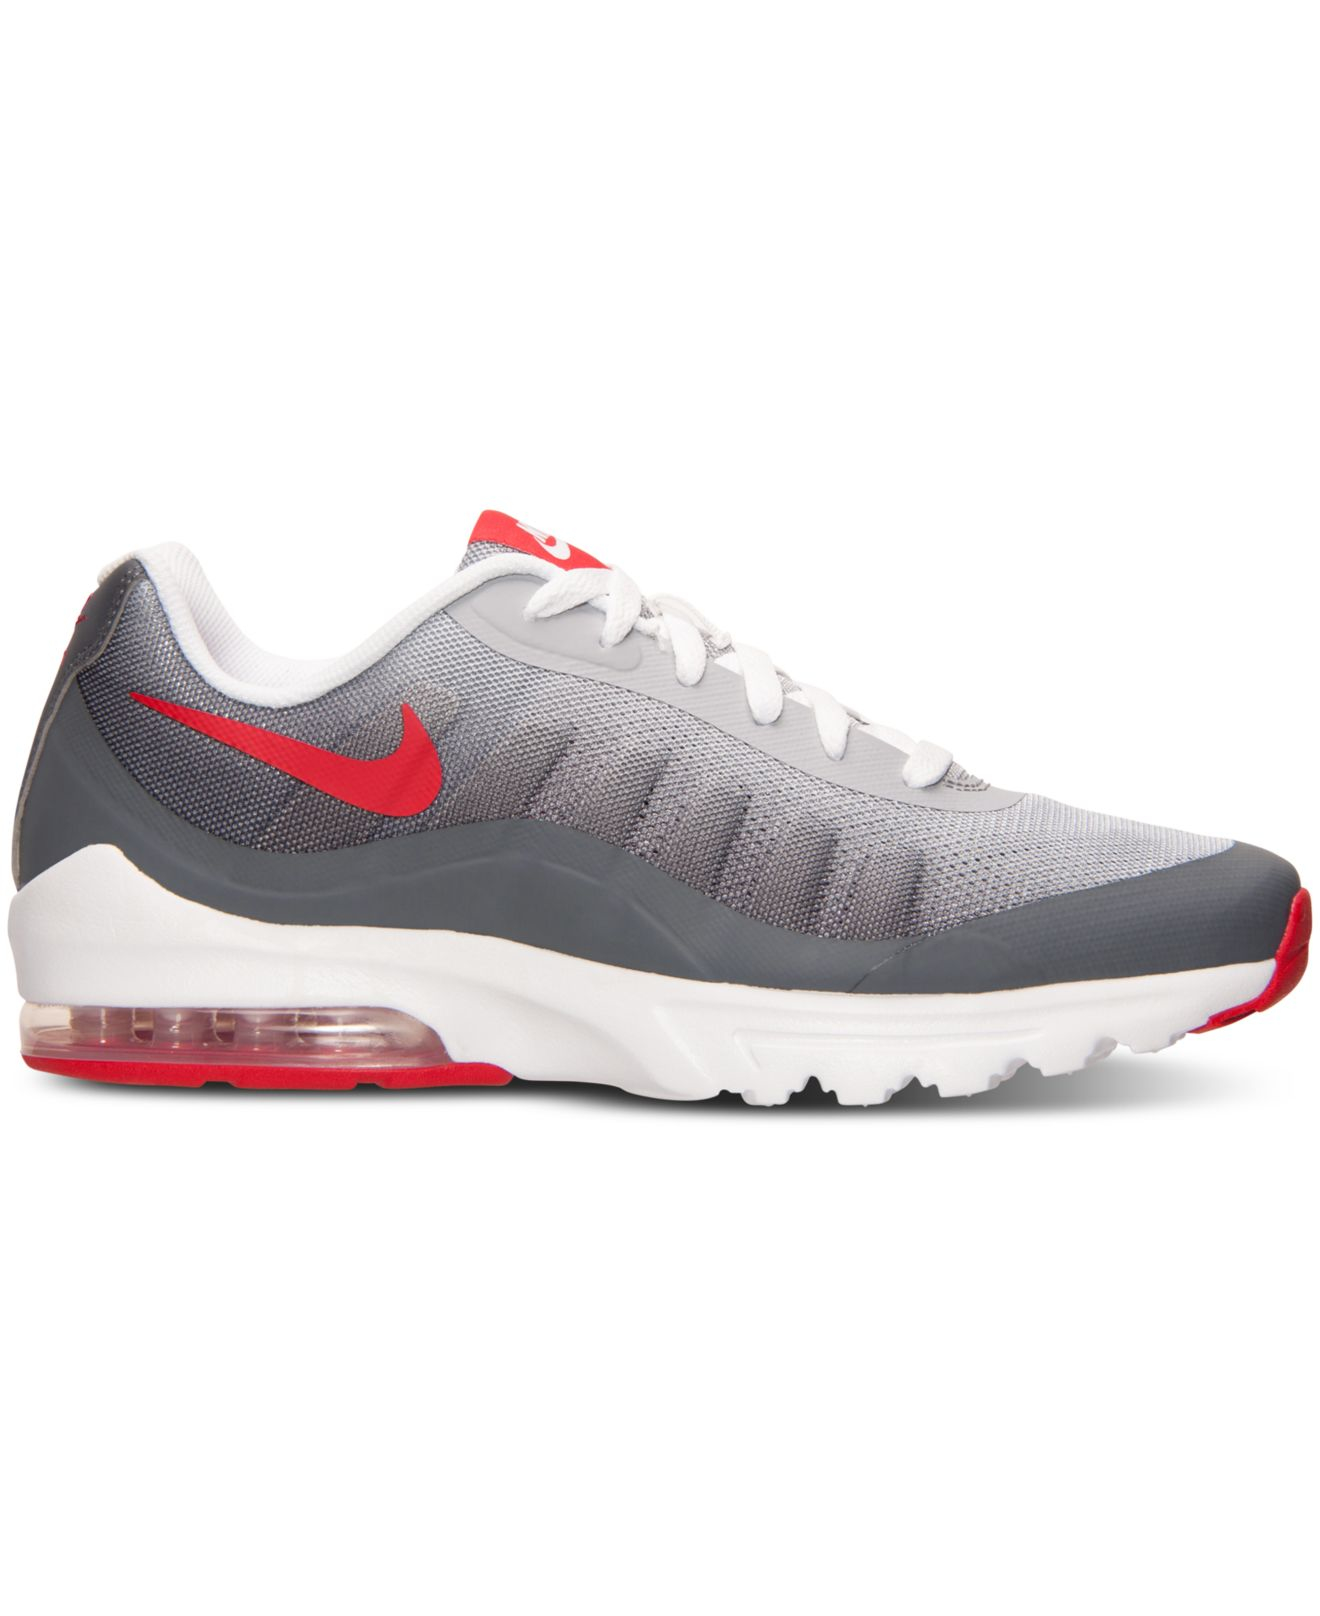 Nike Shoes  Nike Air Max Invigor Print Mens Sports Shoes GreyRedWhite